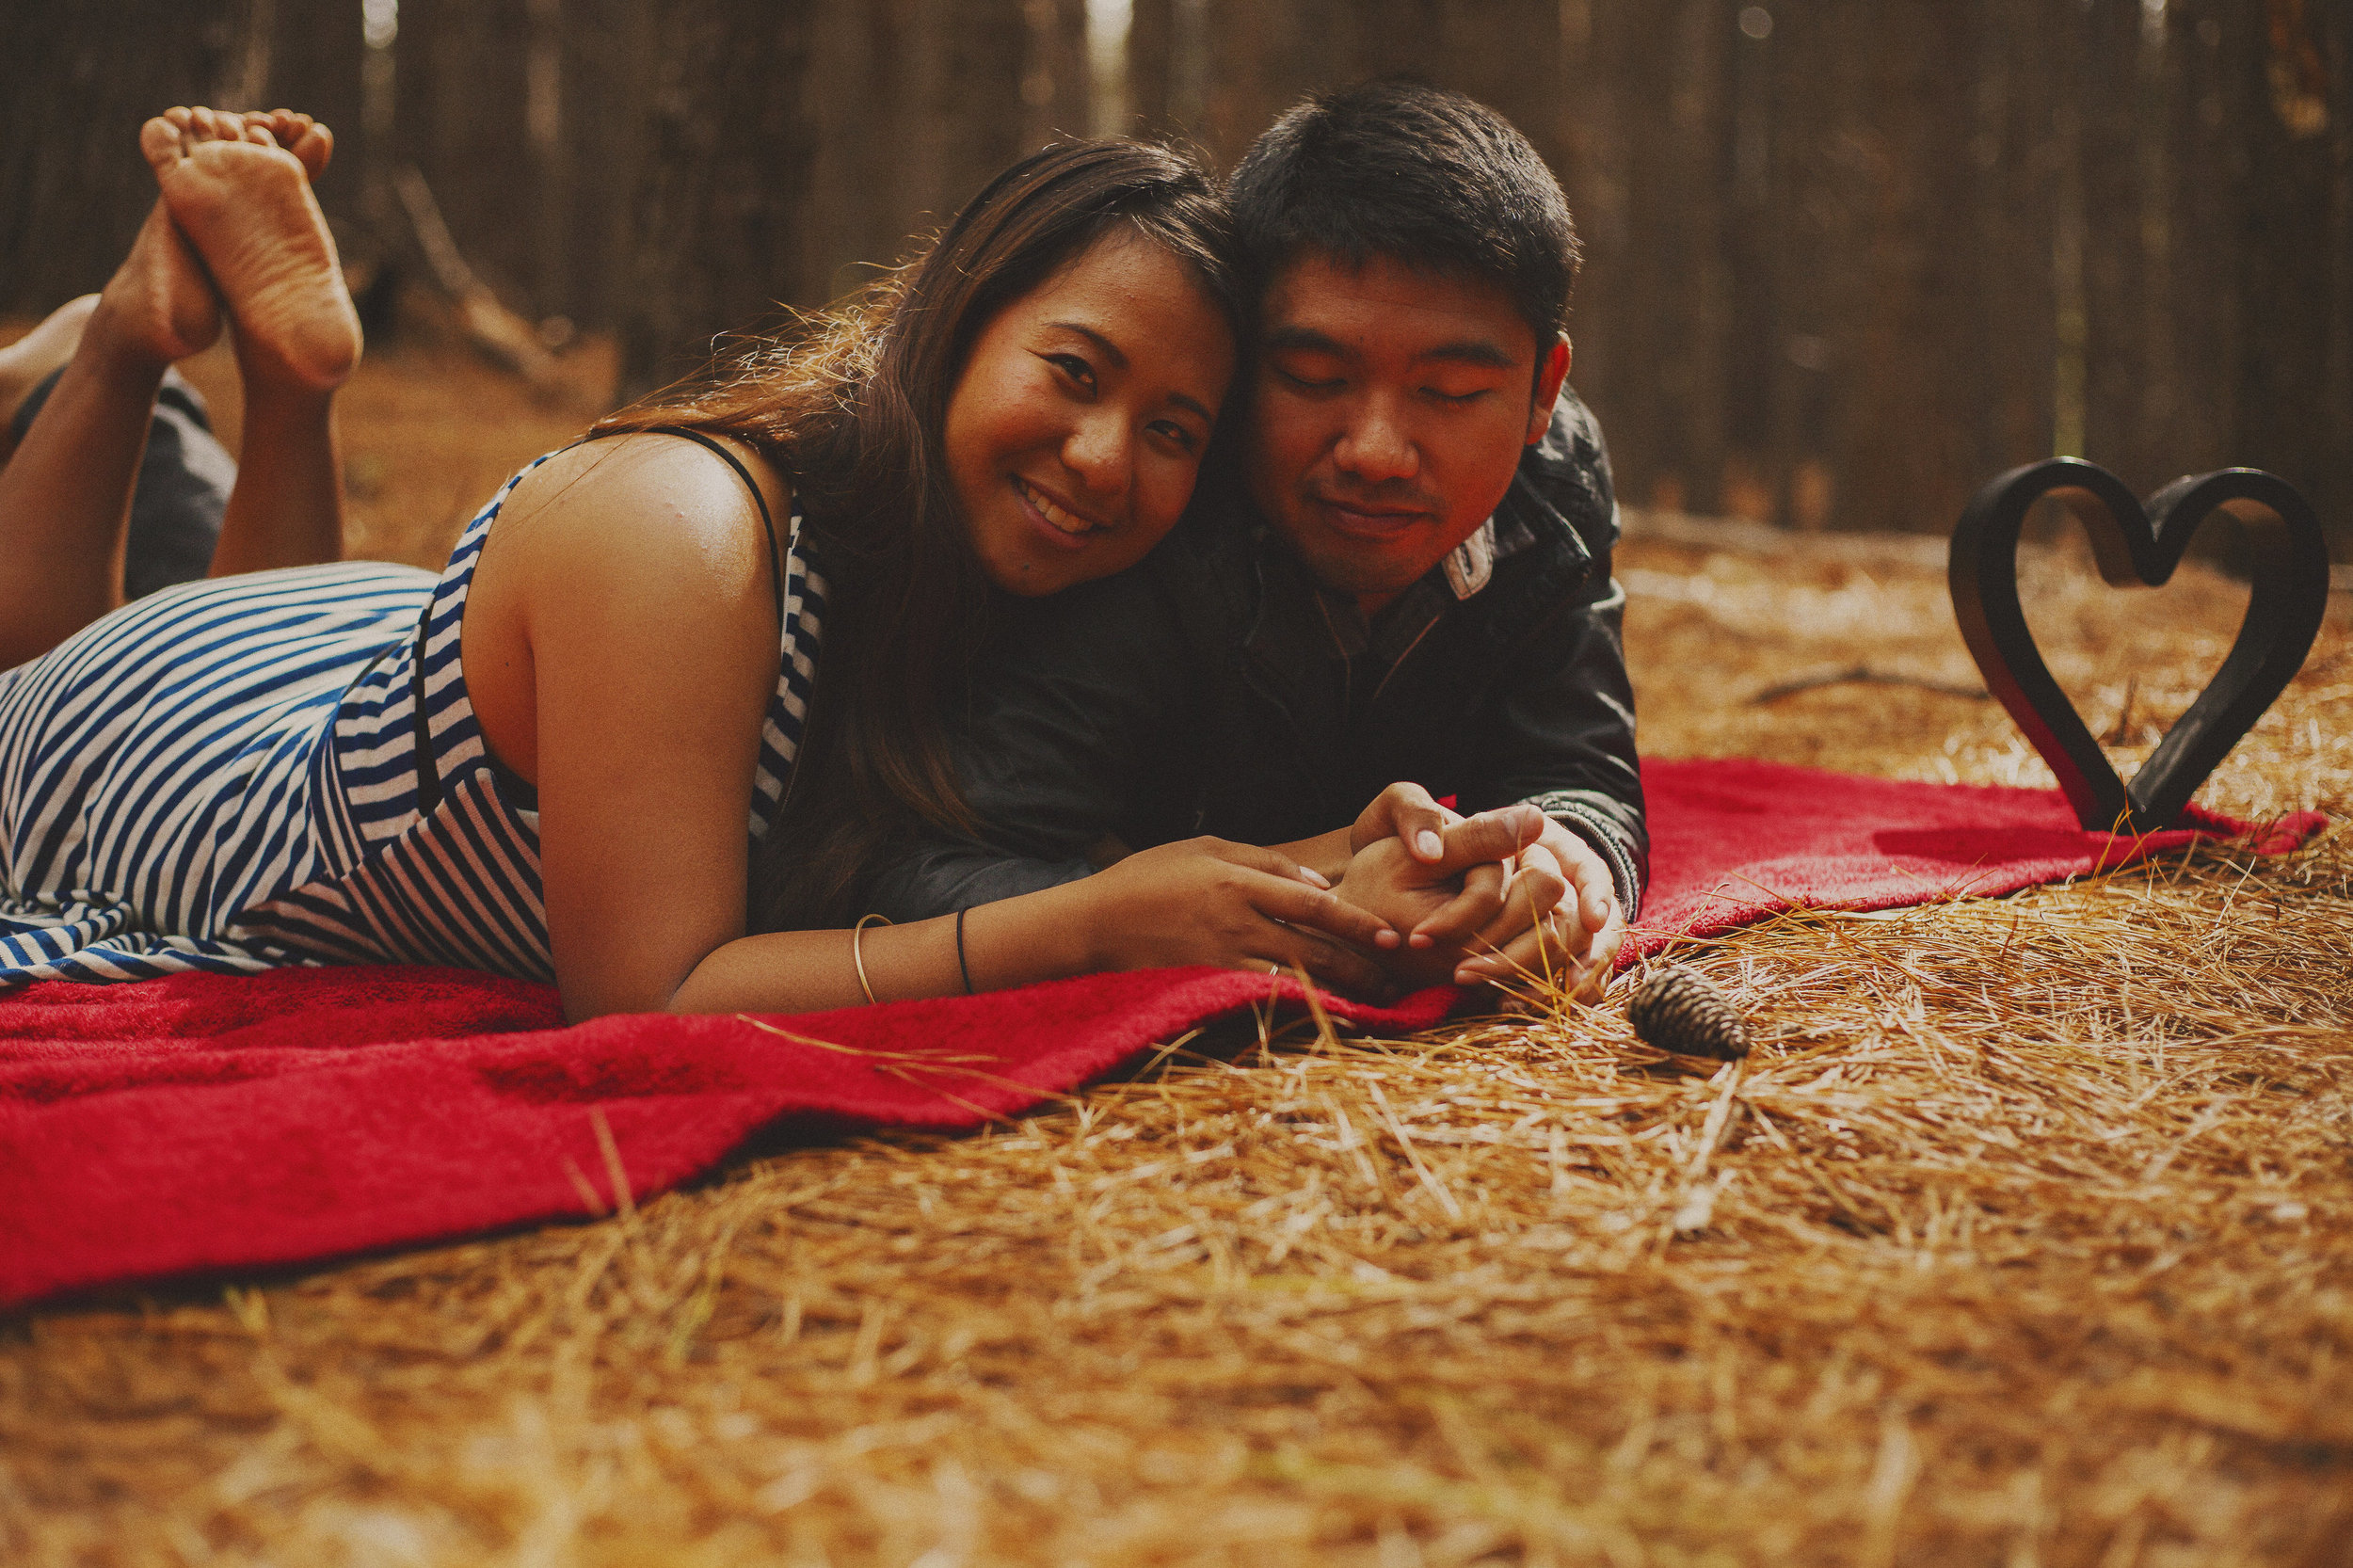 angie-diaz-photography-maui-upcountry-engagement-30.jpg